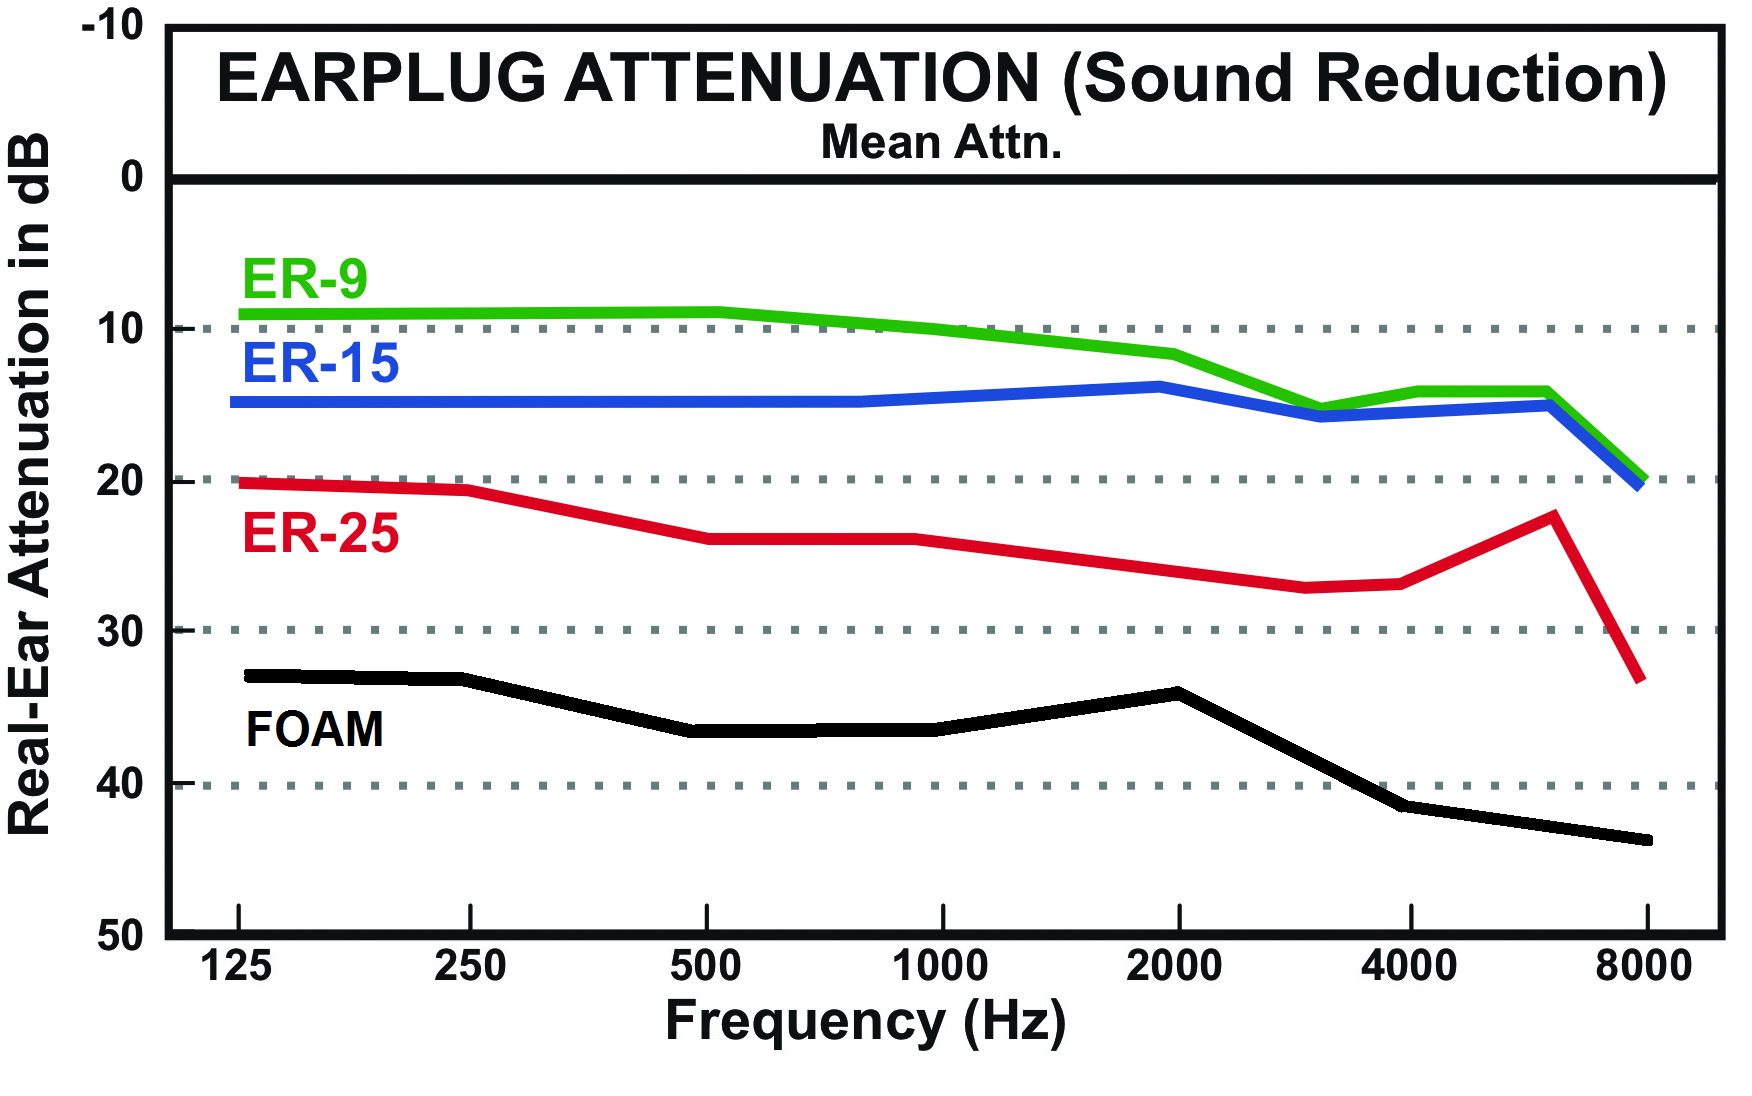 Attenuation/frequency response of ER Series Musicians Earplugs  (tm) compaired with generic foam earplugs.www.etymotic.com